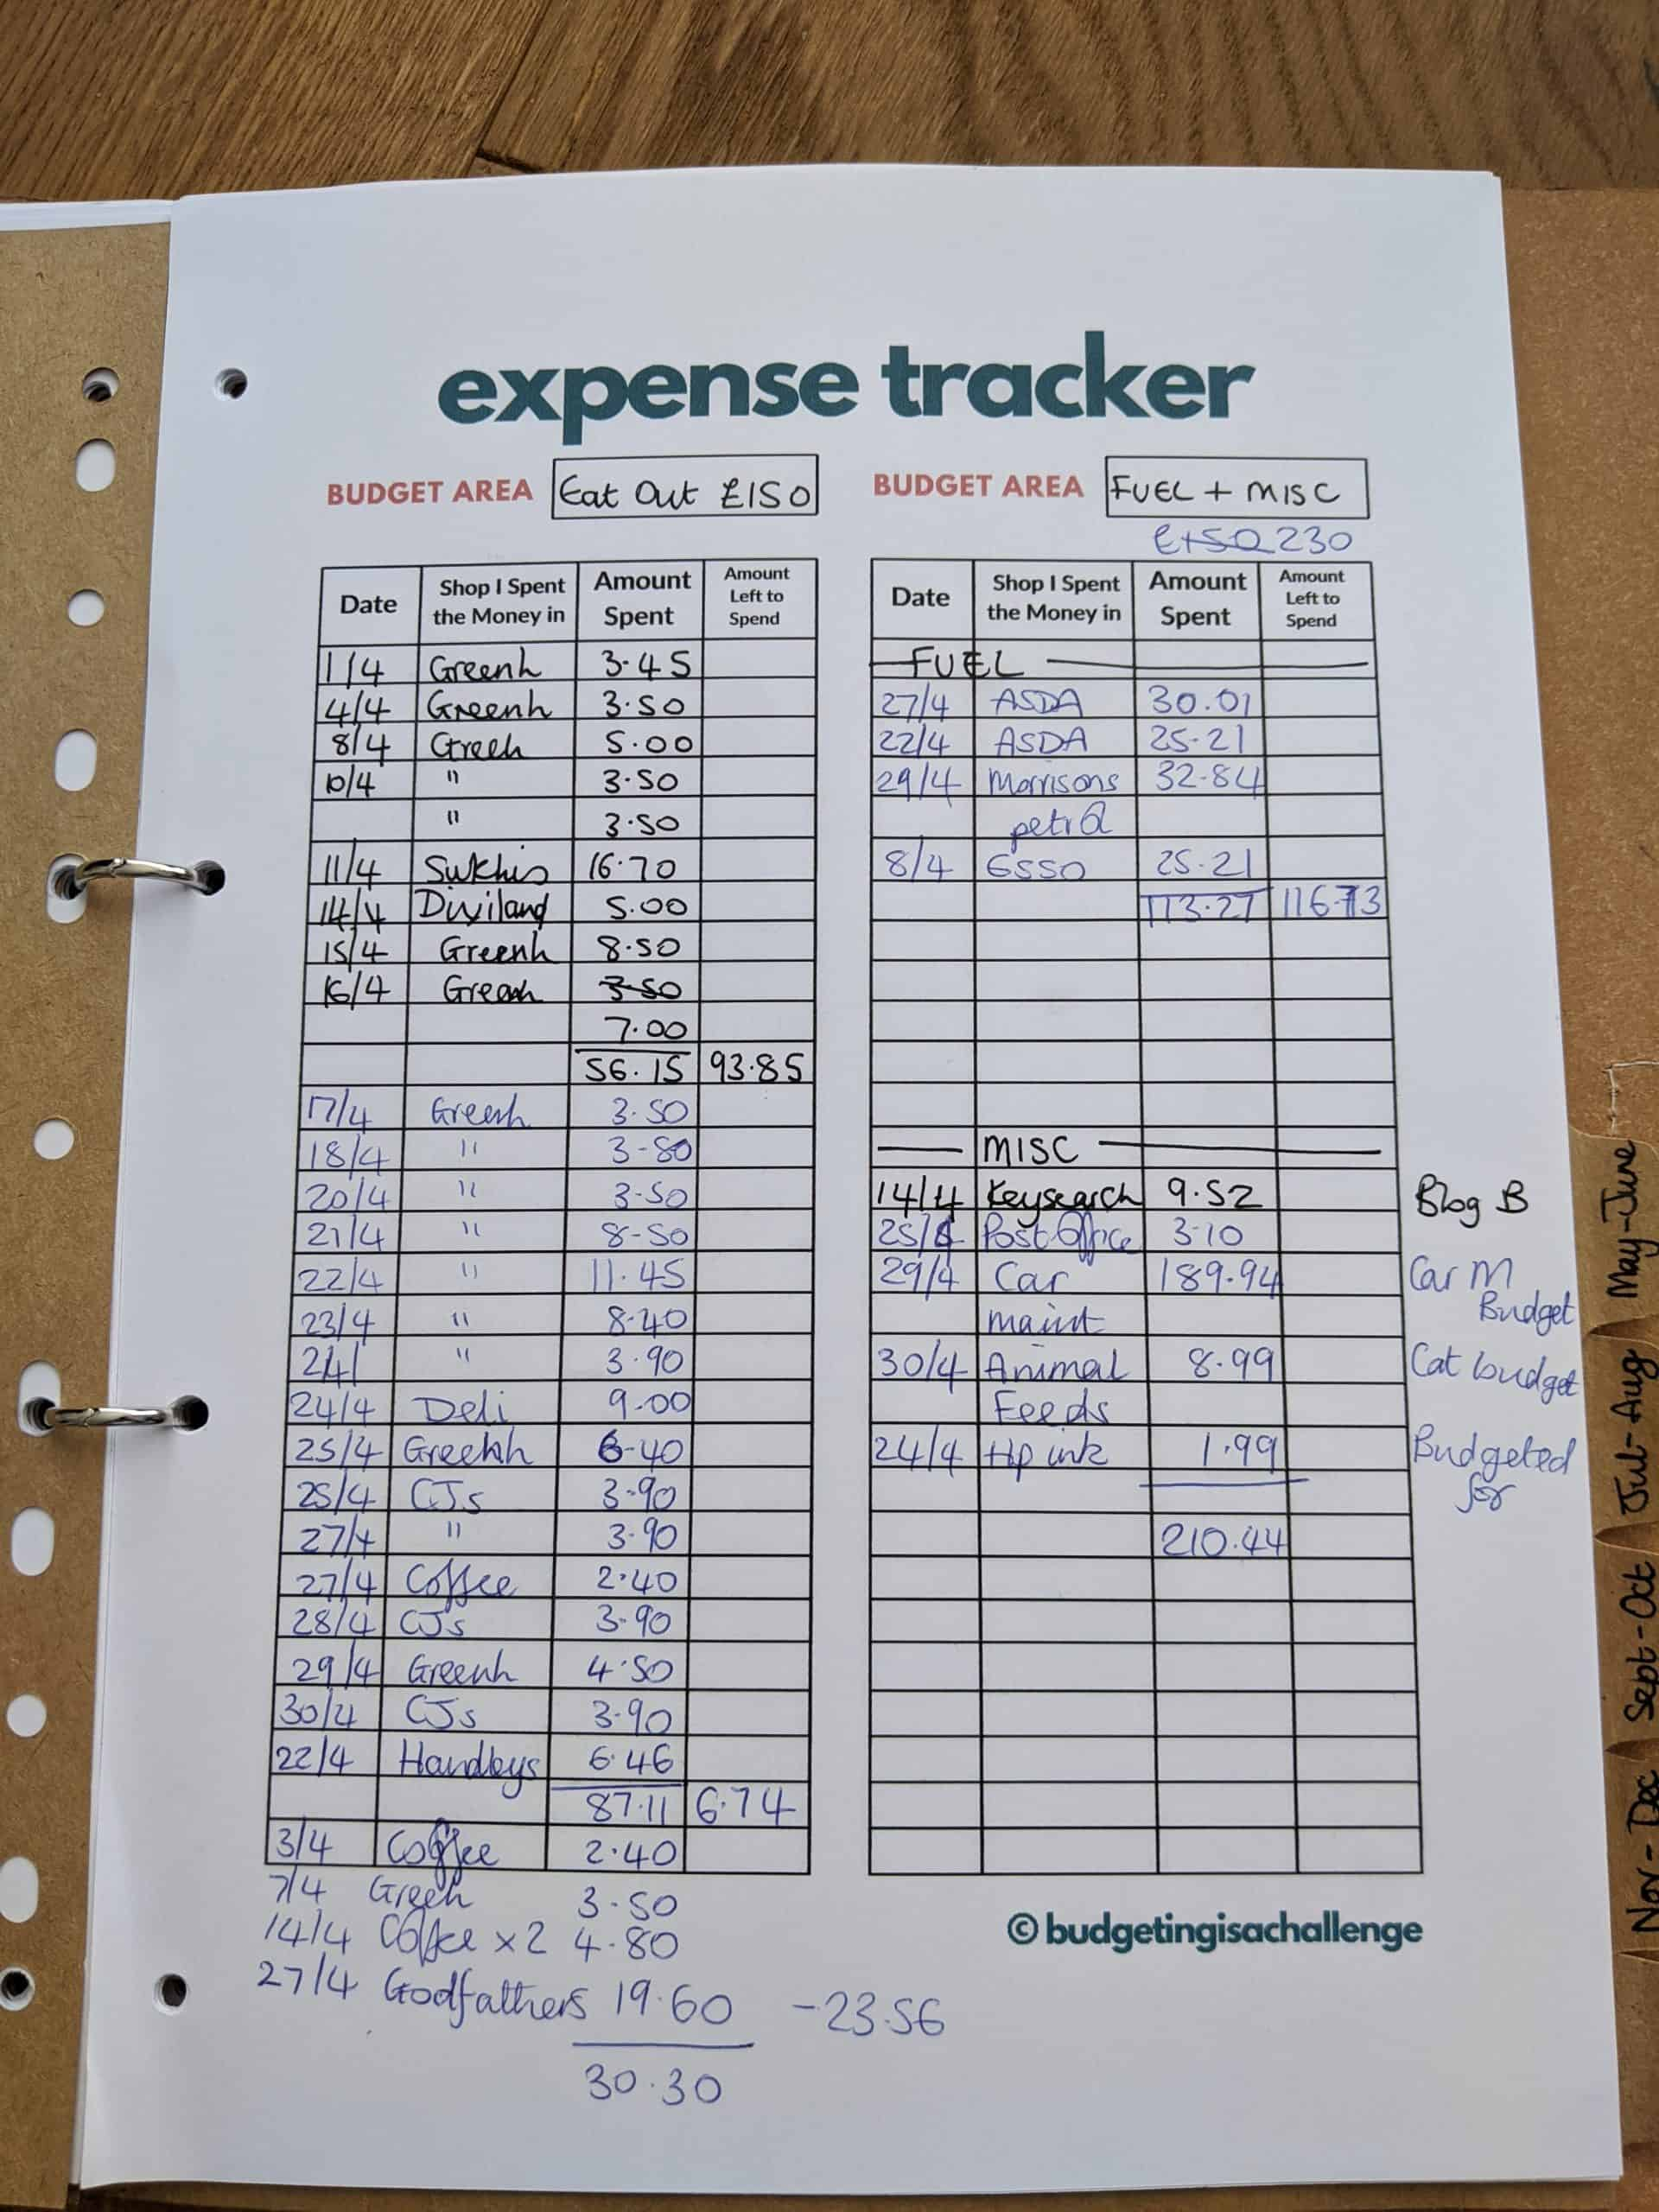 I use an expense tracker to track my general spending on fuel, eating out and miscellaneous spending.